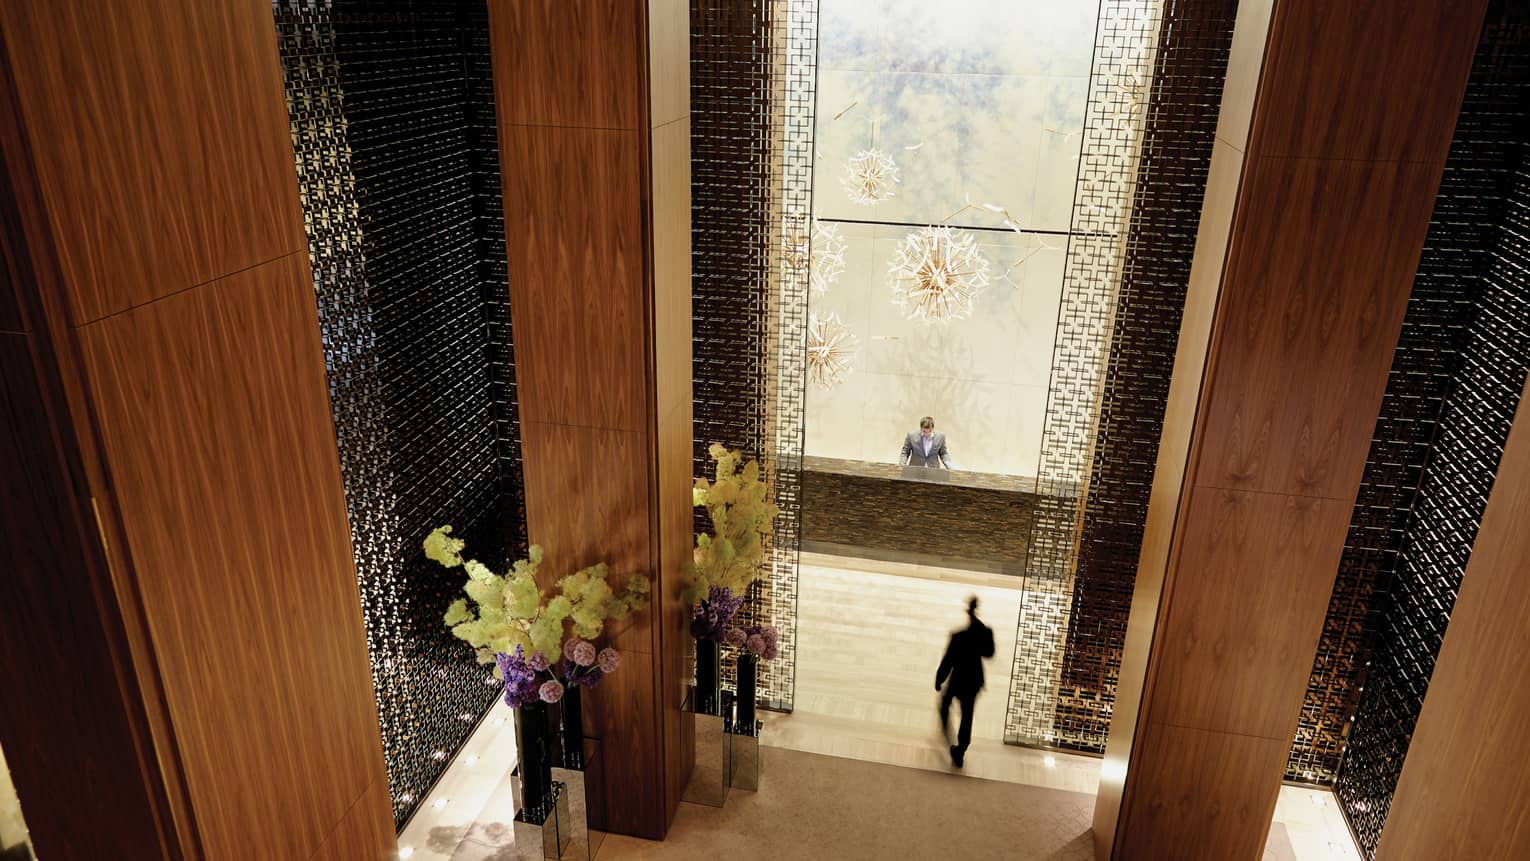 Aerial view of long wood pillars, flowers in dimly-lit lobby, man in suit walking towards reception